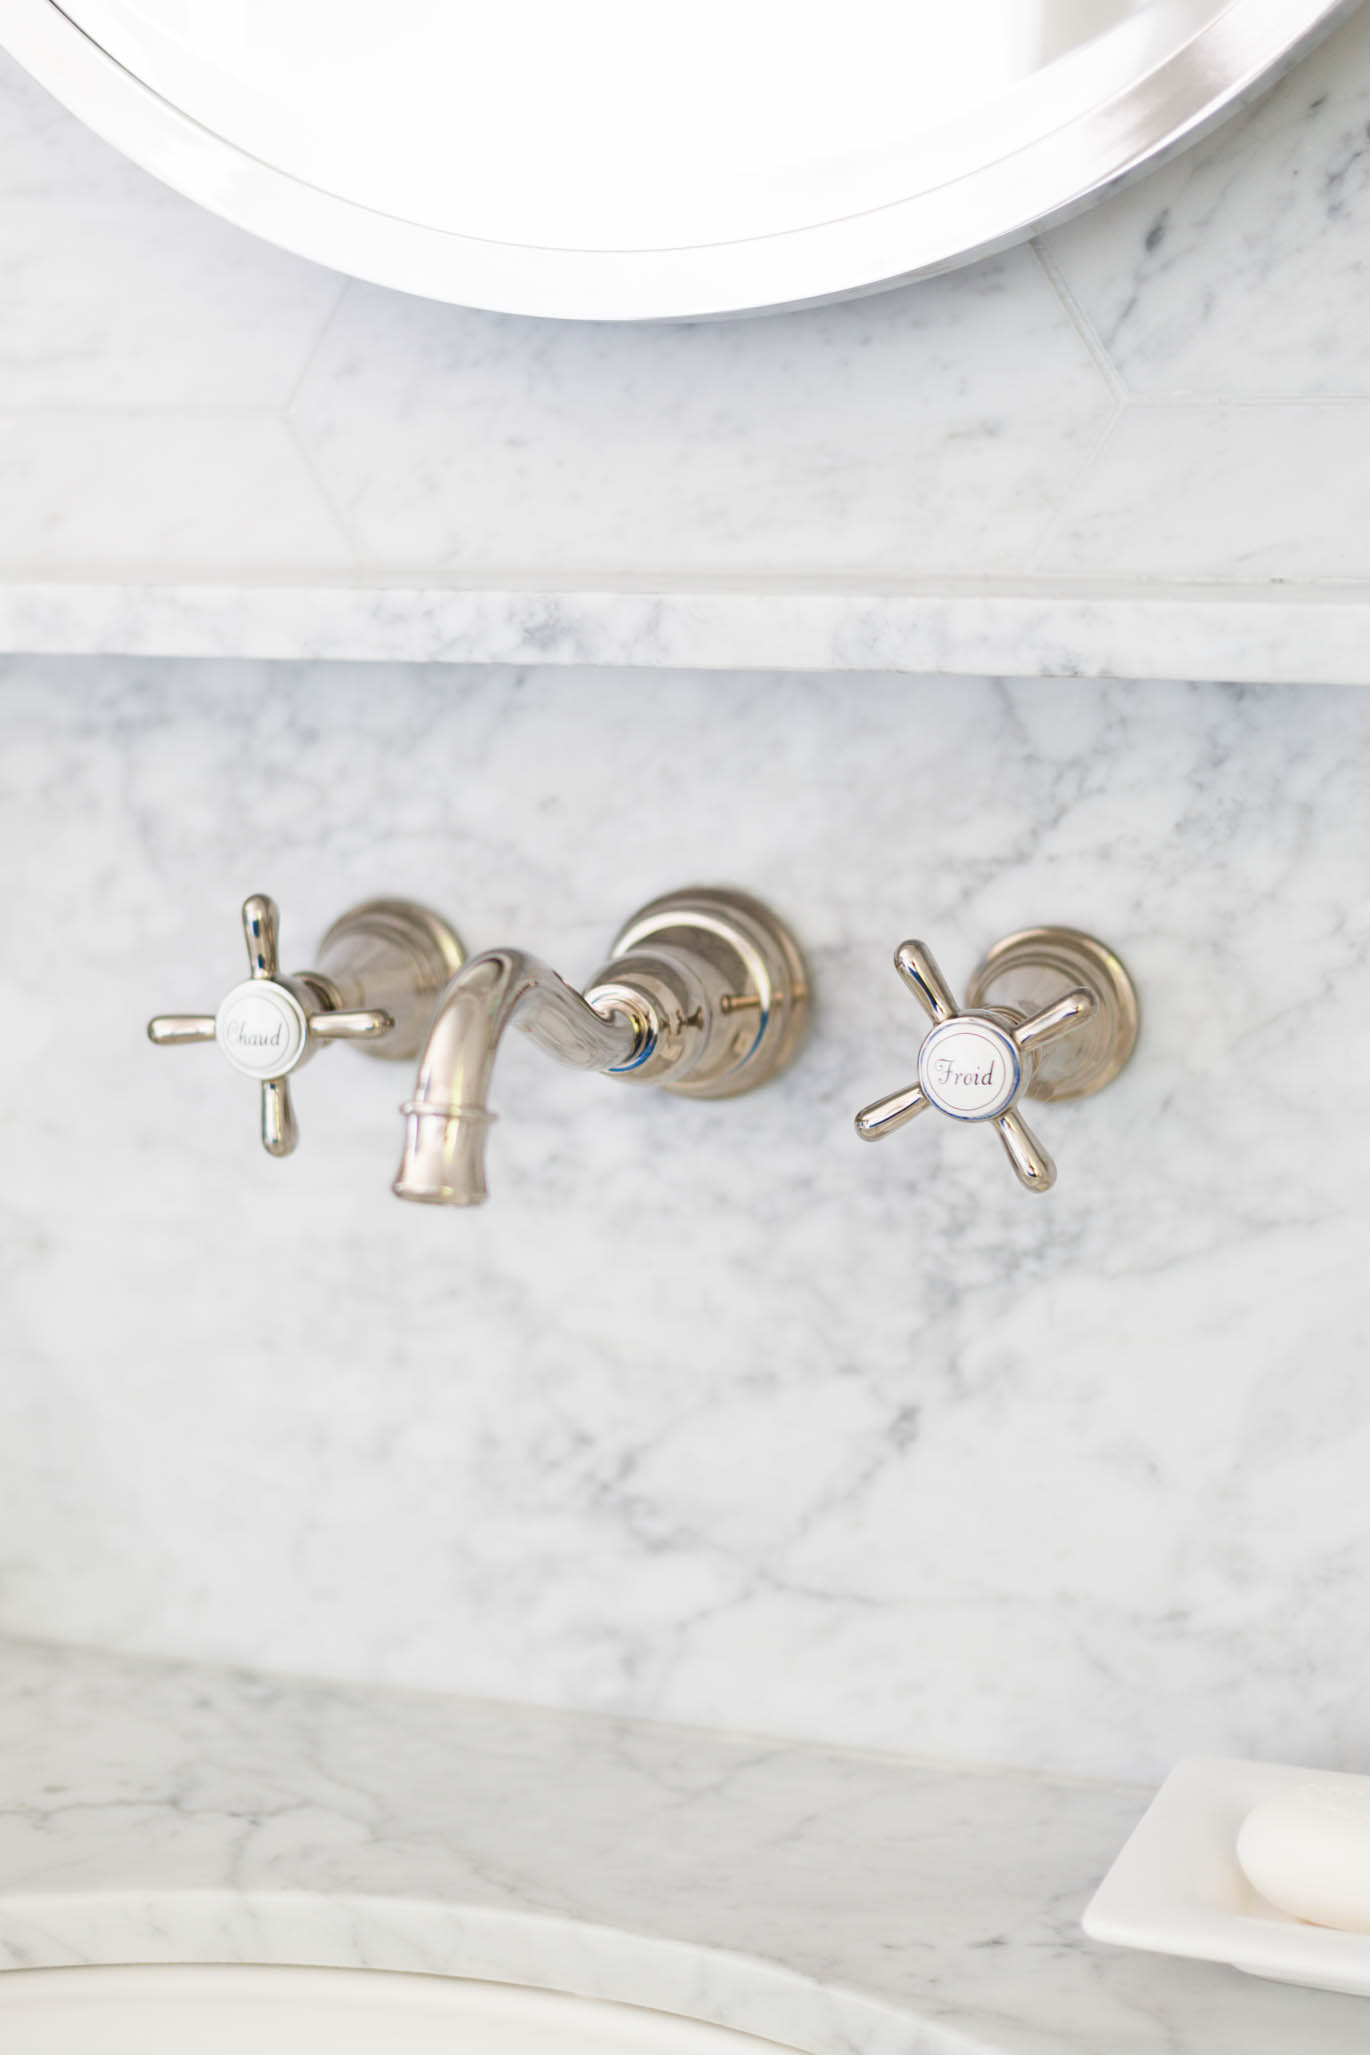 Wall mount faucet on white marble backsplash with ledge at bathroom sink | Carla Aston, Designer | Tori Aston, Photographer  #bathroomremodel #marblebathroom #hextile